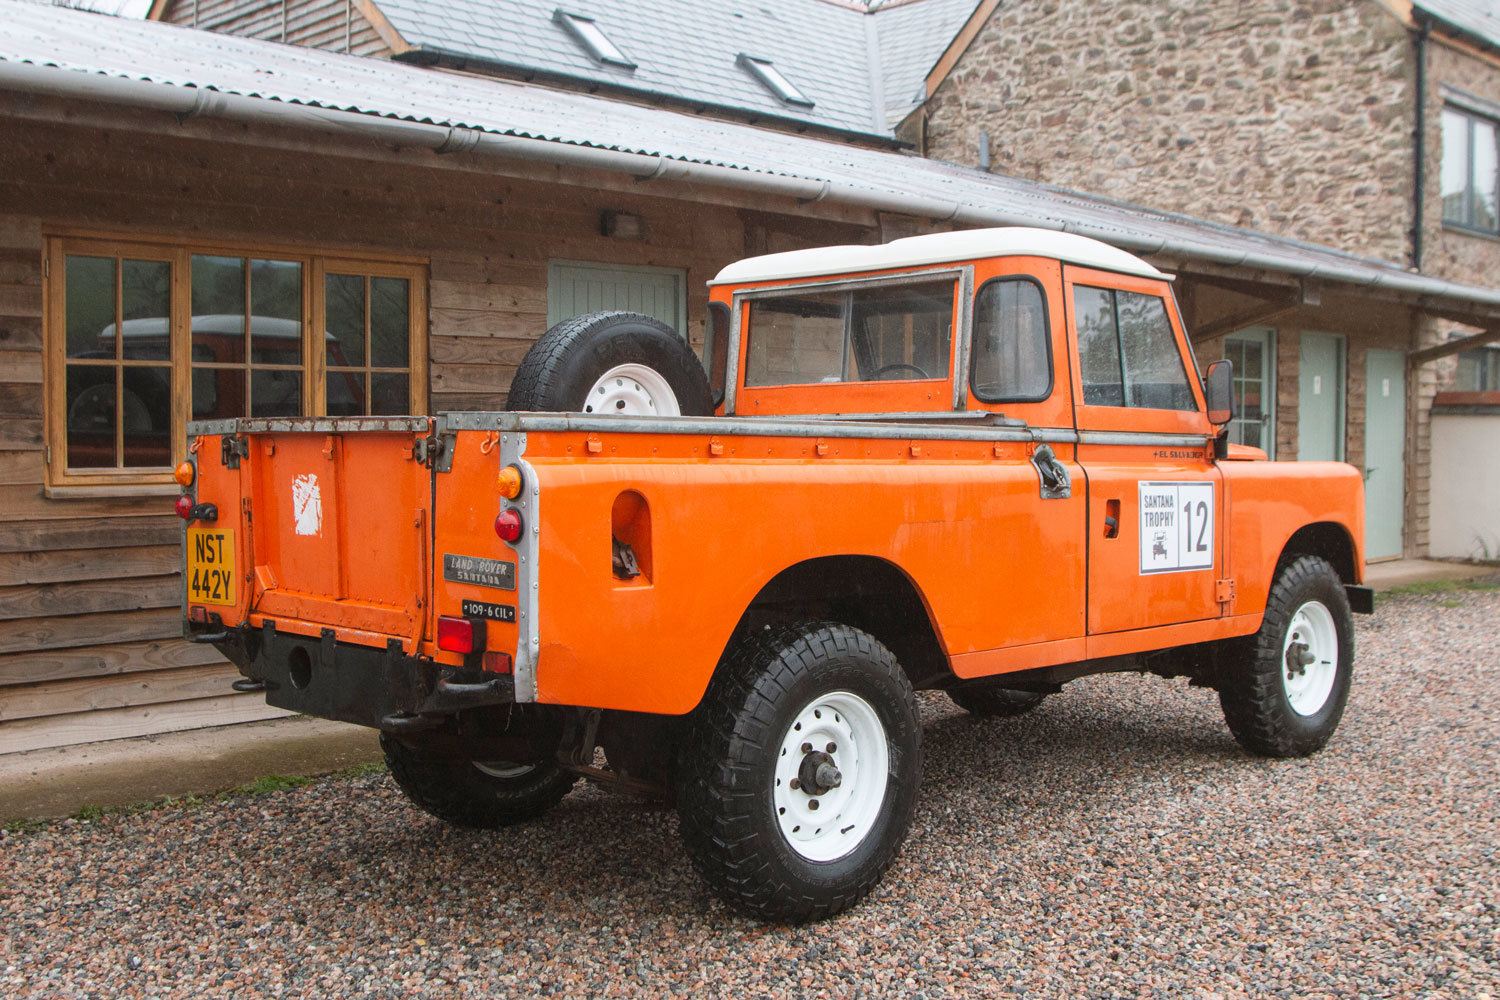 1982 Land Rover Santana 109 6 Cyl Diesel LHD For Sale (picture 3 of 6)